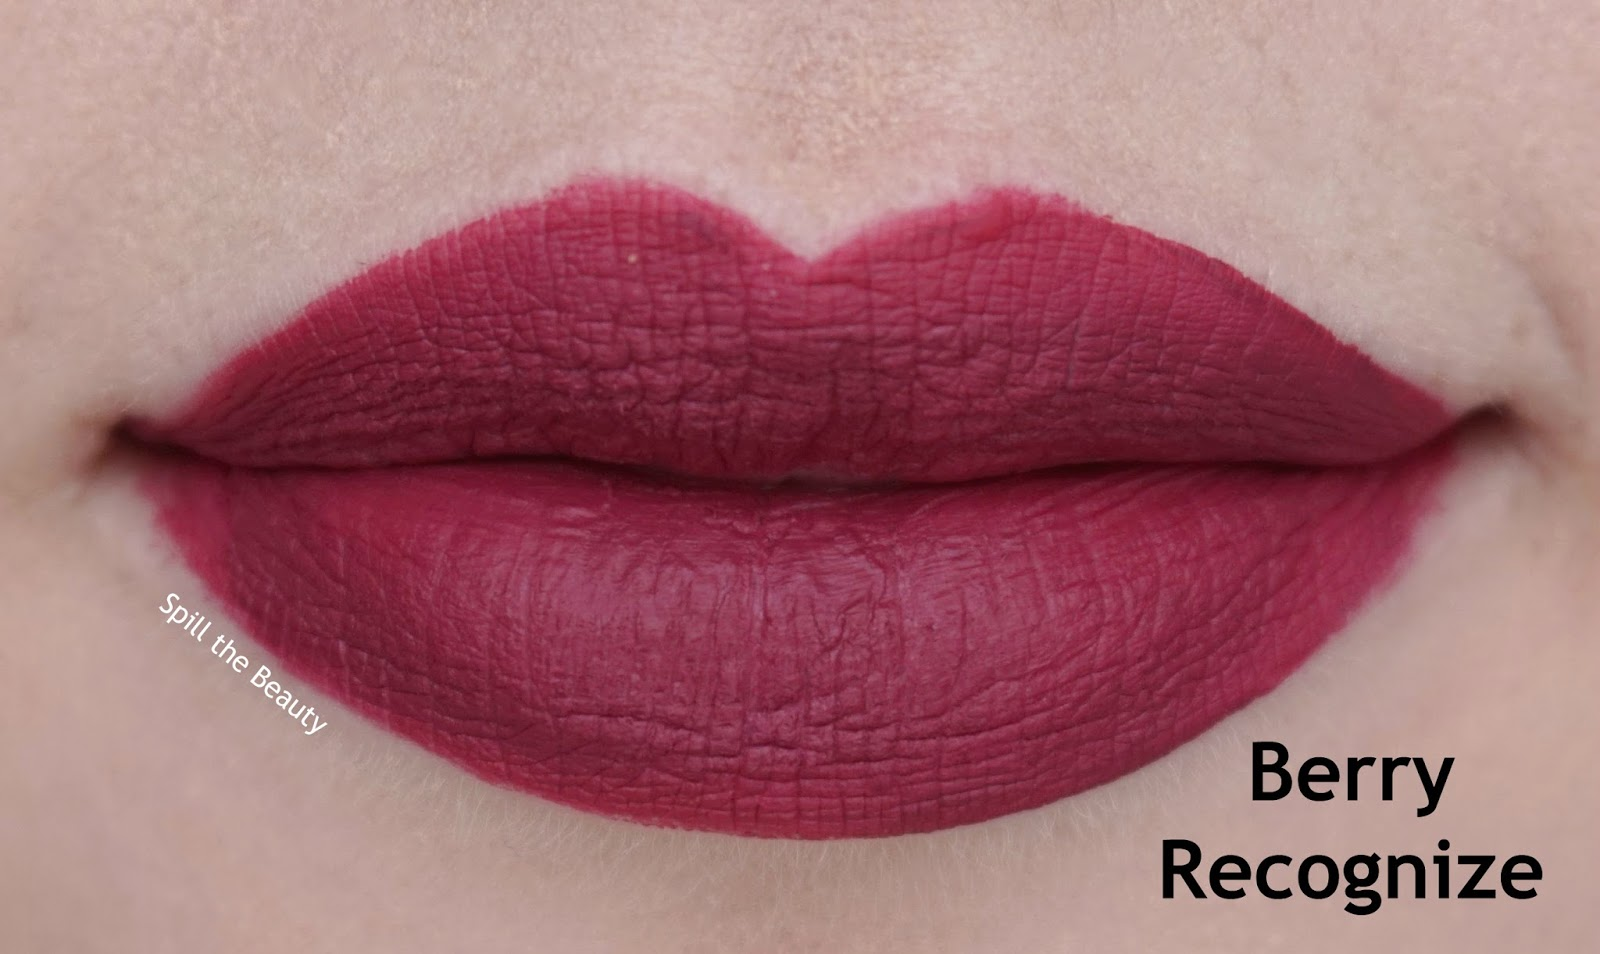 wet n wild liquid catsuit matte lipstick review swatches look berry recognize 926b lips